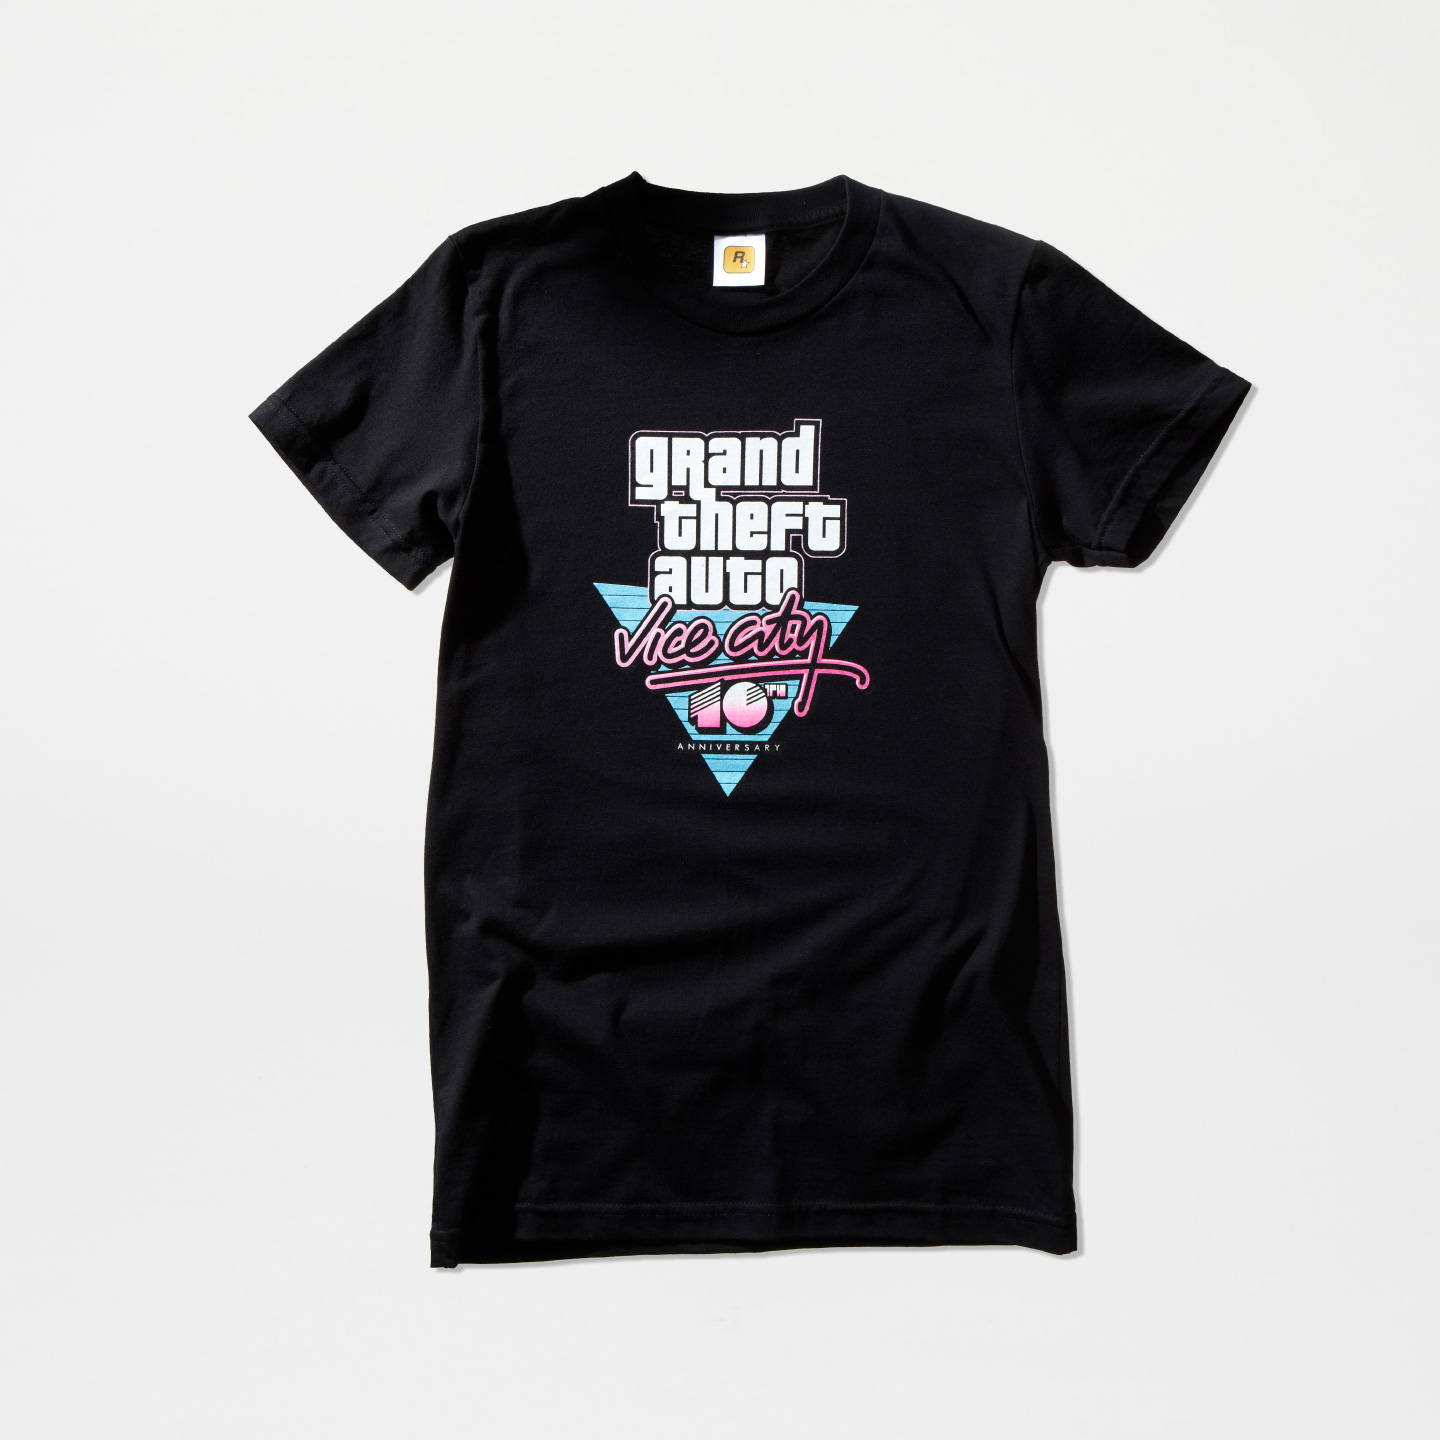 Vice City 10th Anniversary Black Logo Tee